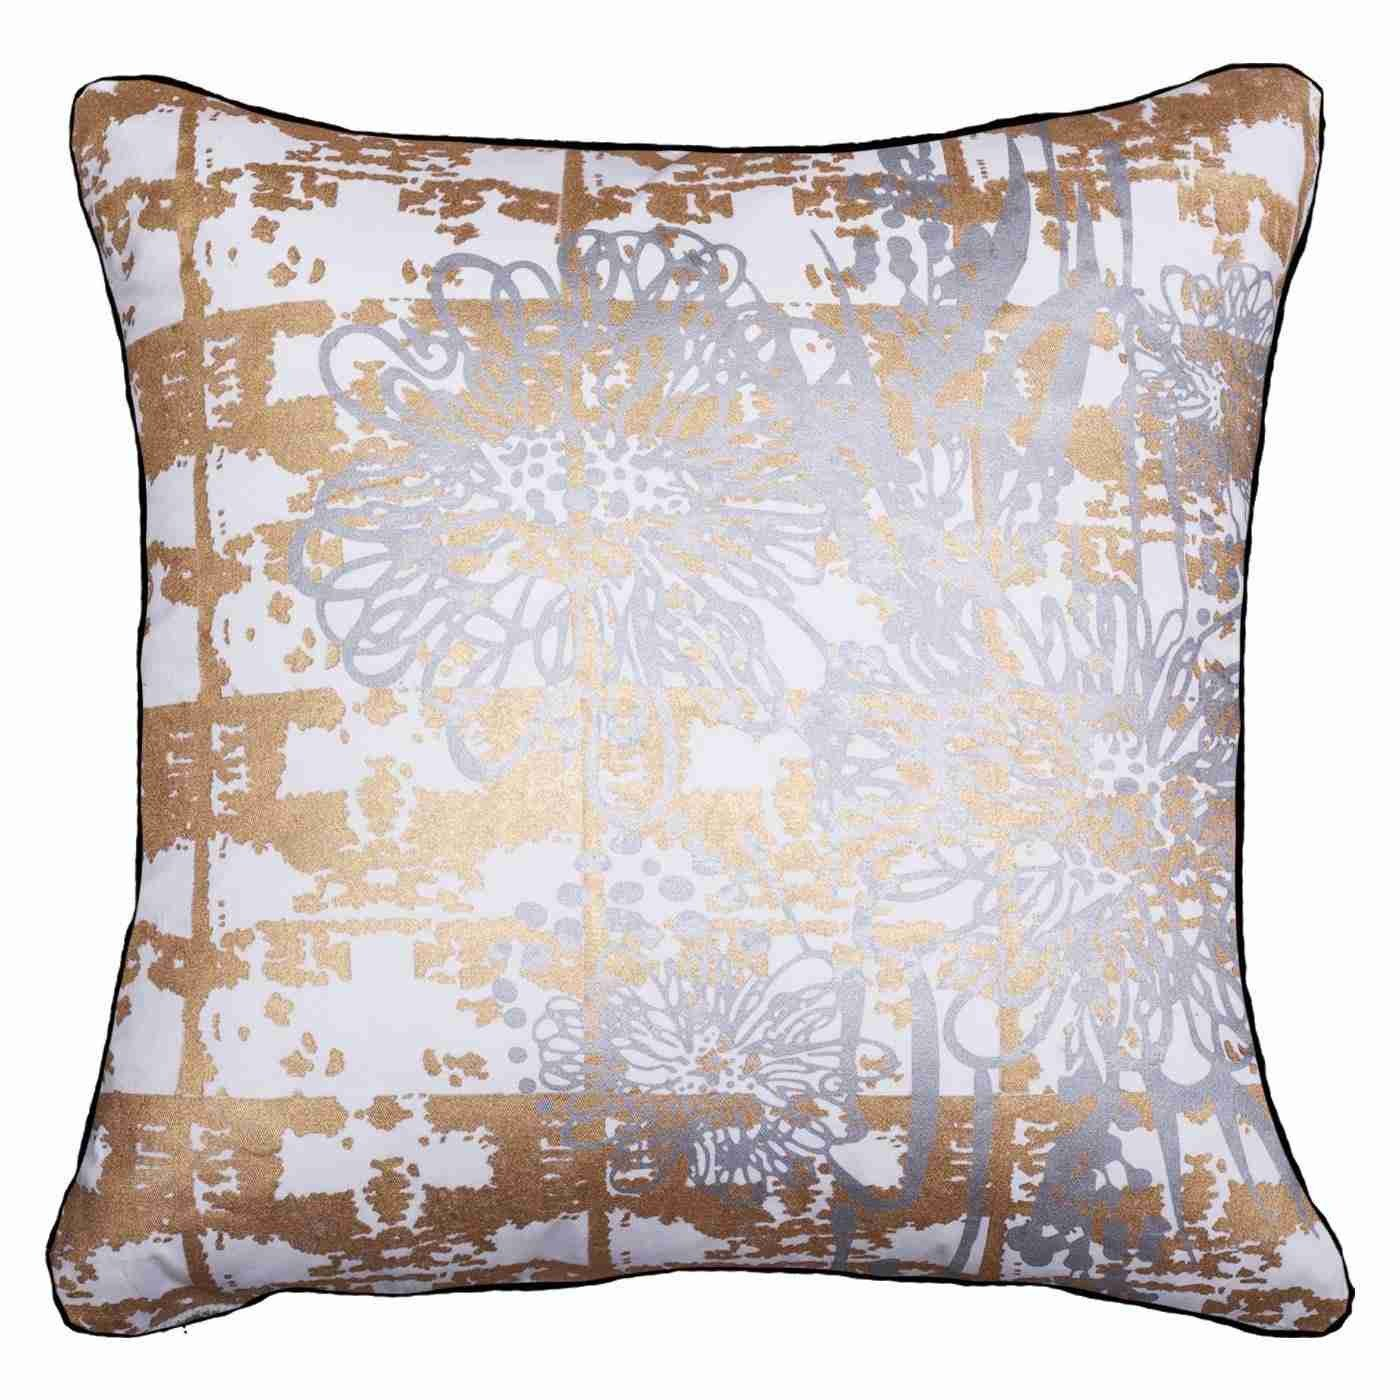 Grevillea Gold/ Silver Lounge Cushion 55x55cm